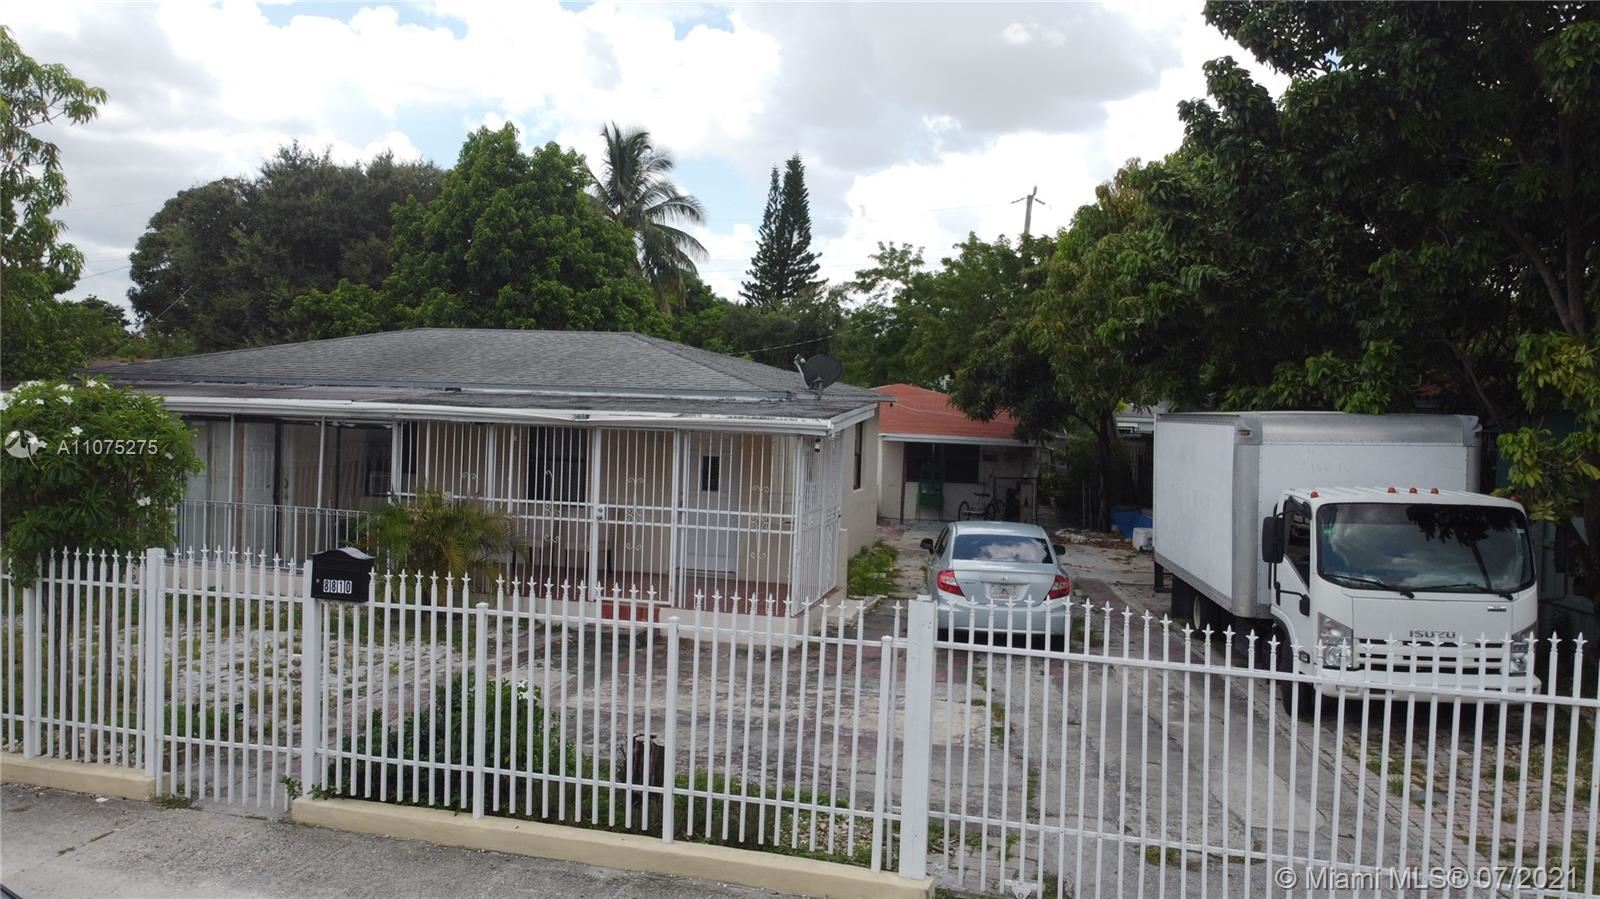 8810 NW 32nd Ct, Miami, FL 33147 - #: A11075275